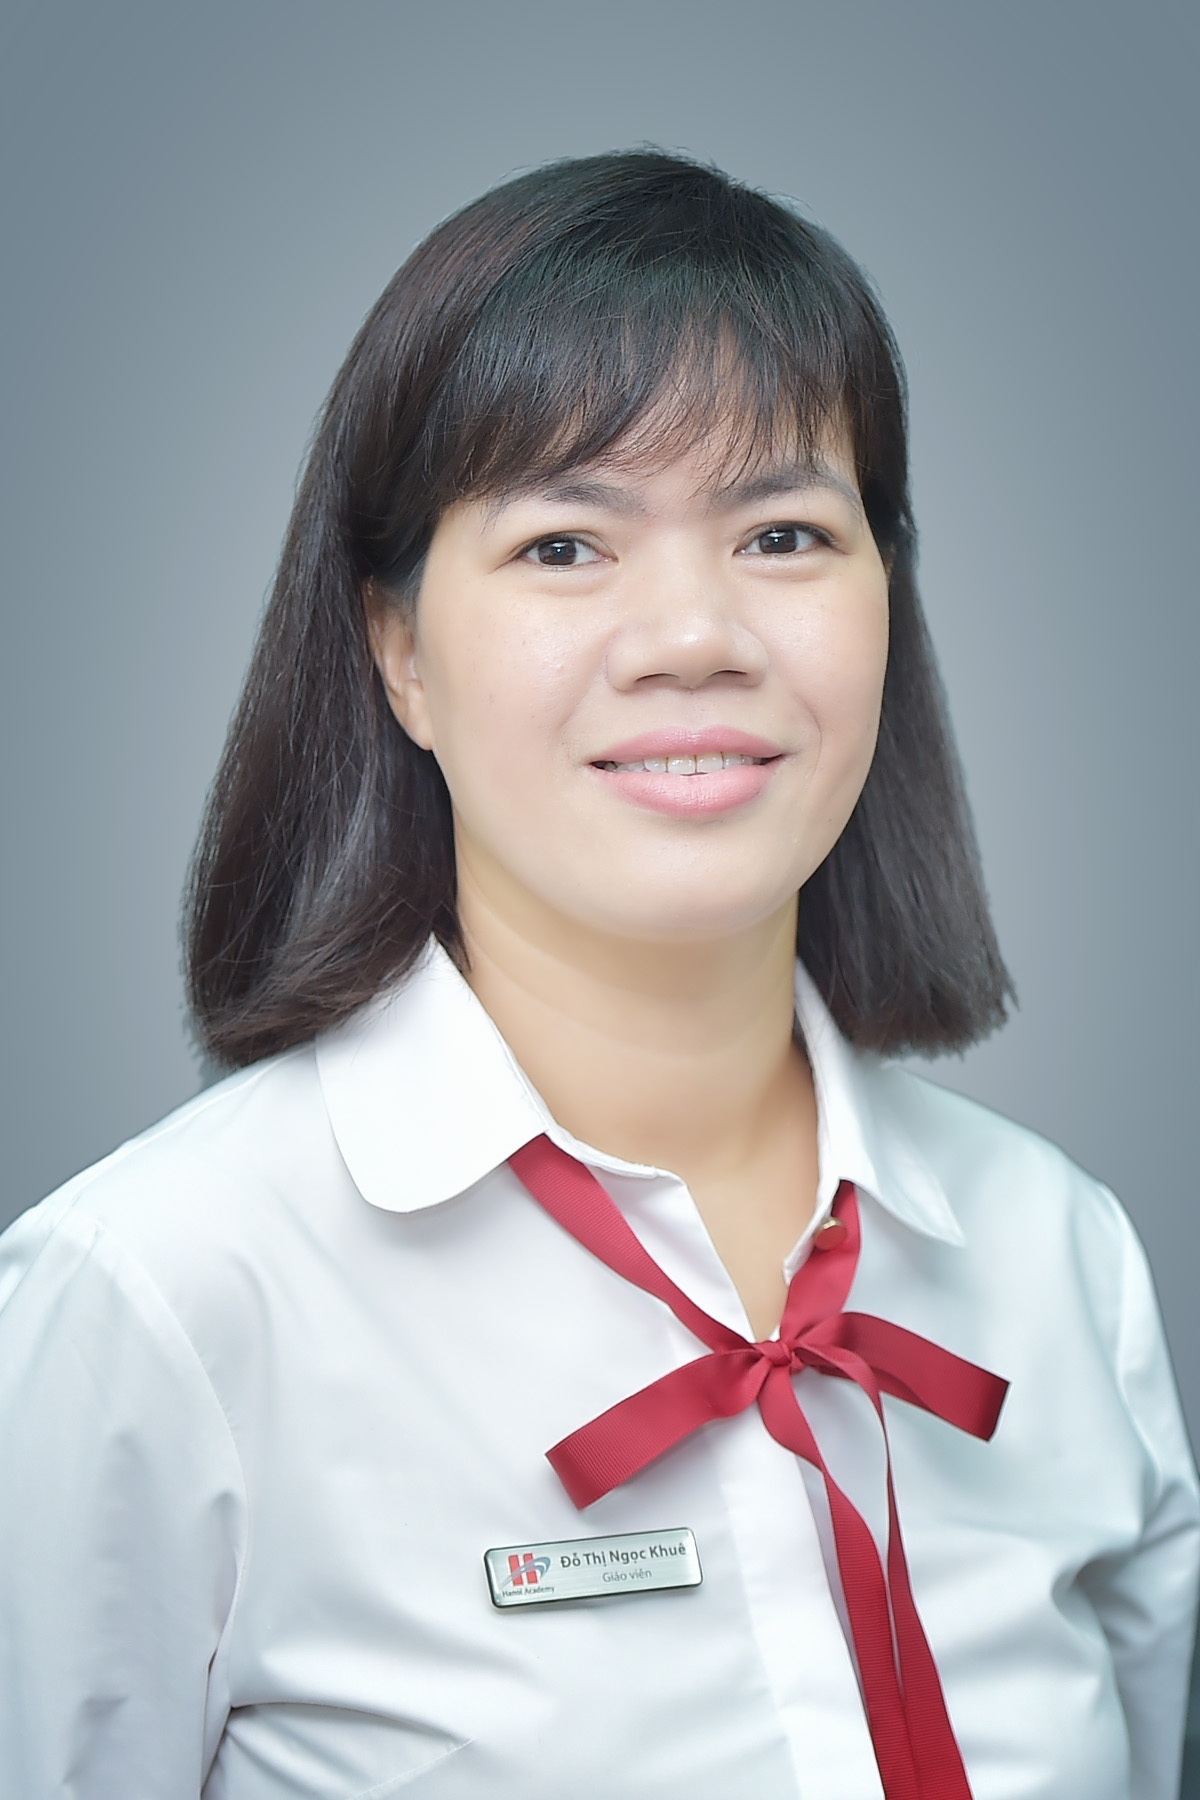 Ms Ngoc Khue Do